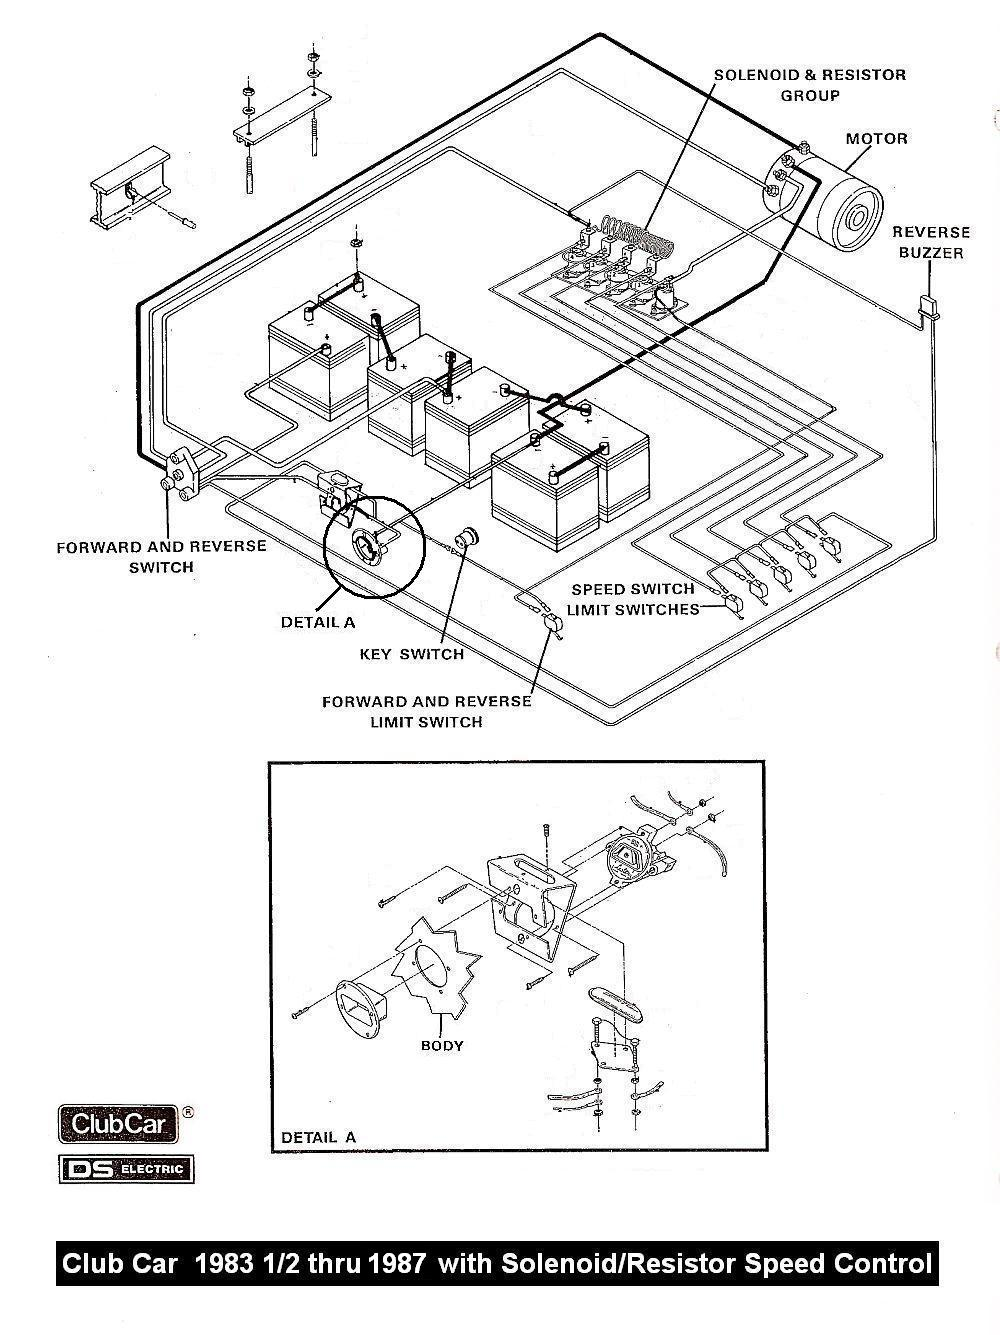 1984 Club Car Ignition Wiring Diagram, 1984, Free Engine